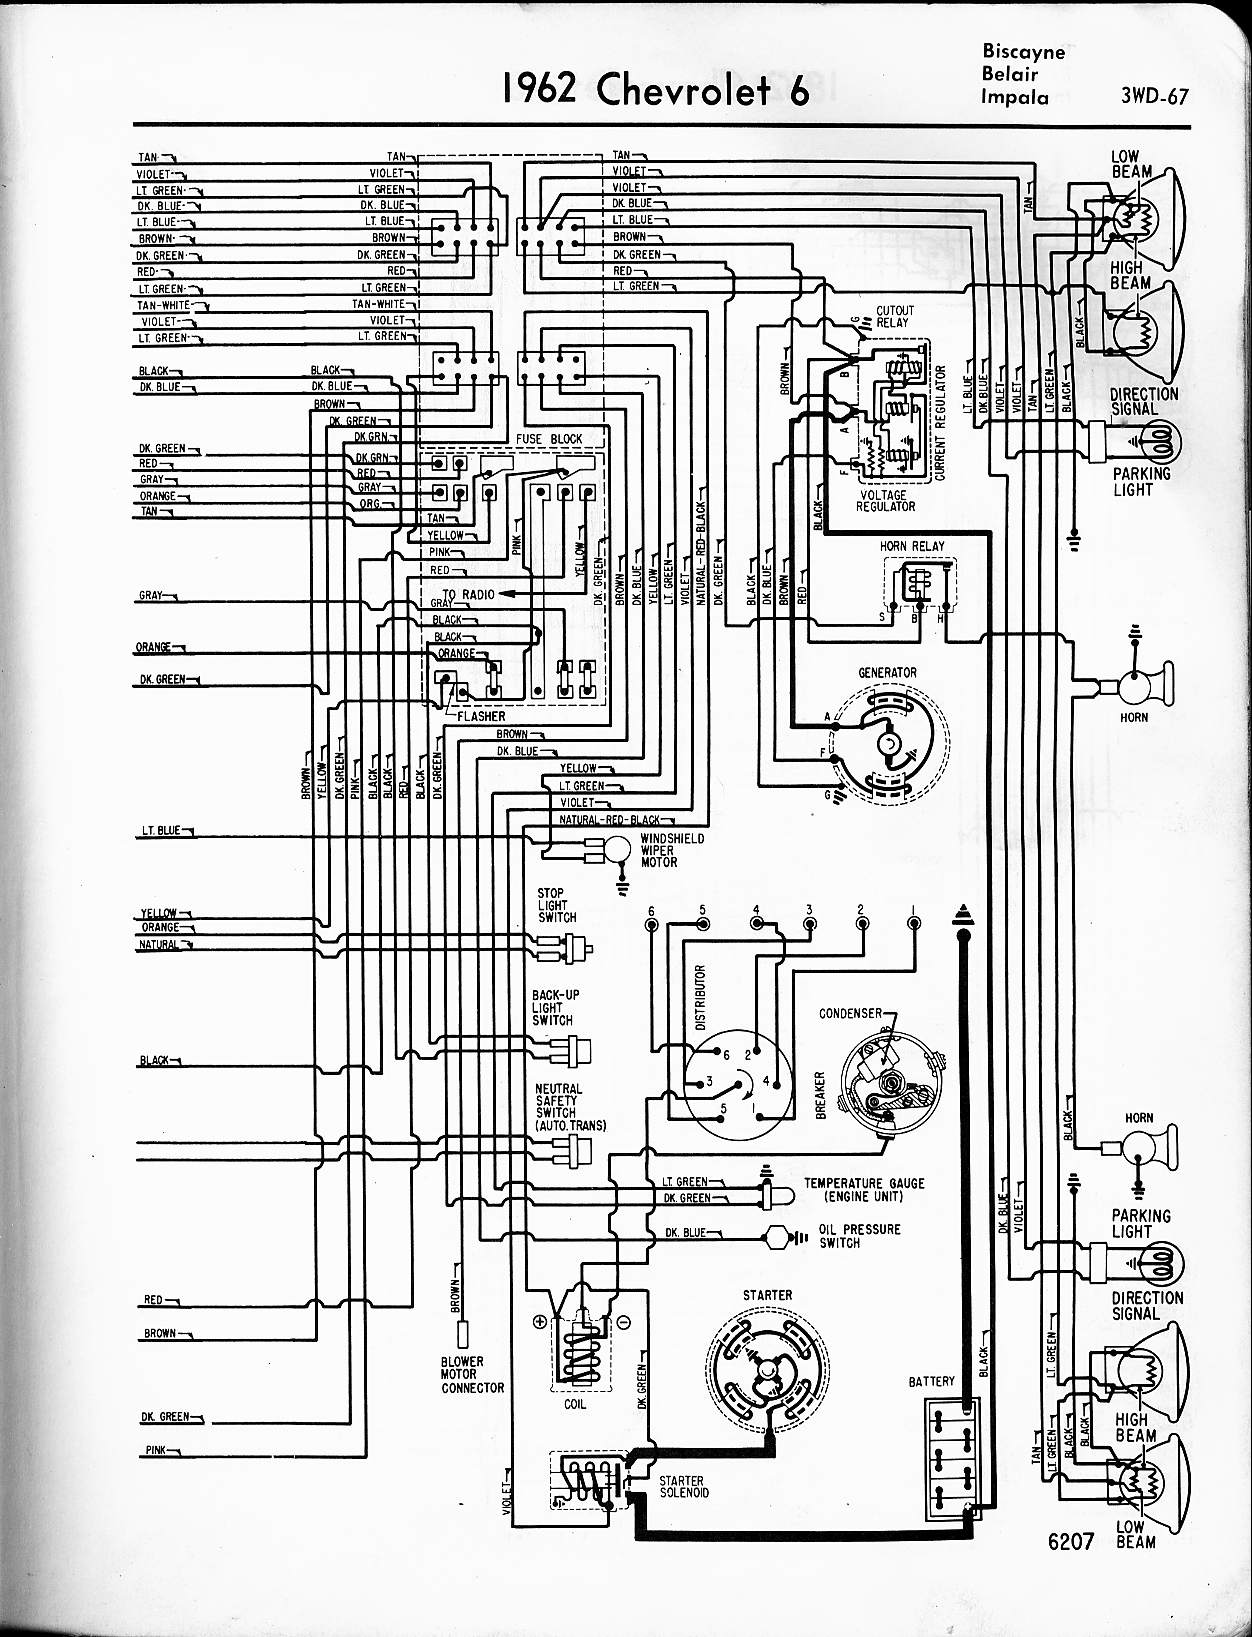 86 Chevy El Camino Fuse Box Diagram also 700r4 Transmission Tv Cable additionally TM 5 3810 207 20 78 furthermore 1966 Chevy Impala Starter Diagram furthermore Wiring Dash Tach 64 Impala Chevytalk Free Restoration. on 62 c10 wiring